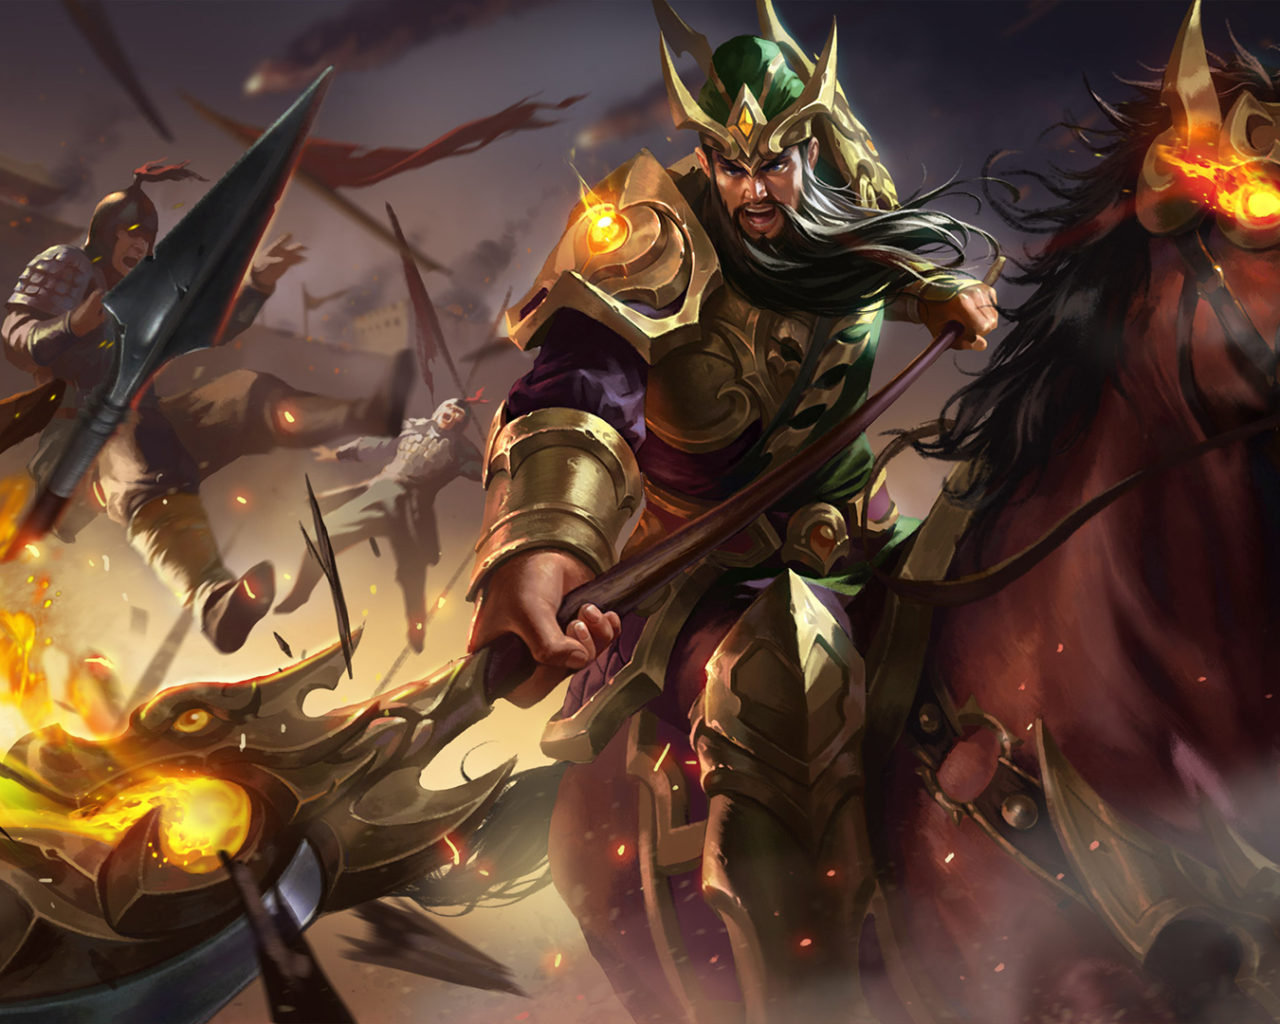 King Crown Hd Wallpaper Guan Yu Knight Assassin King Of Glory Warrior On A Horse